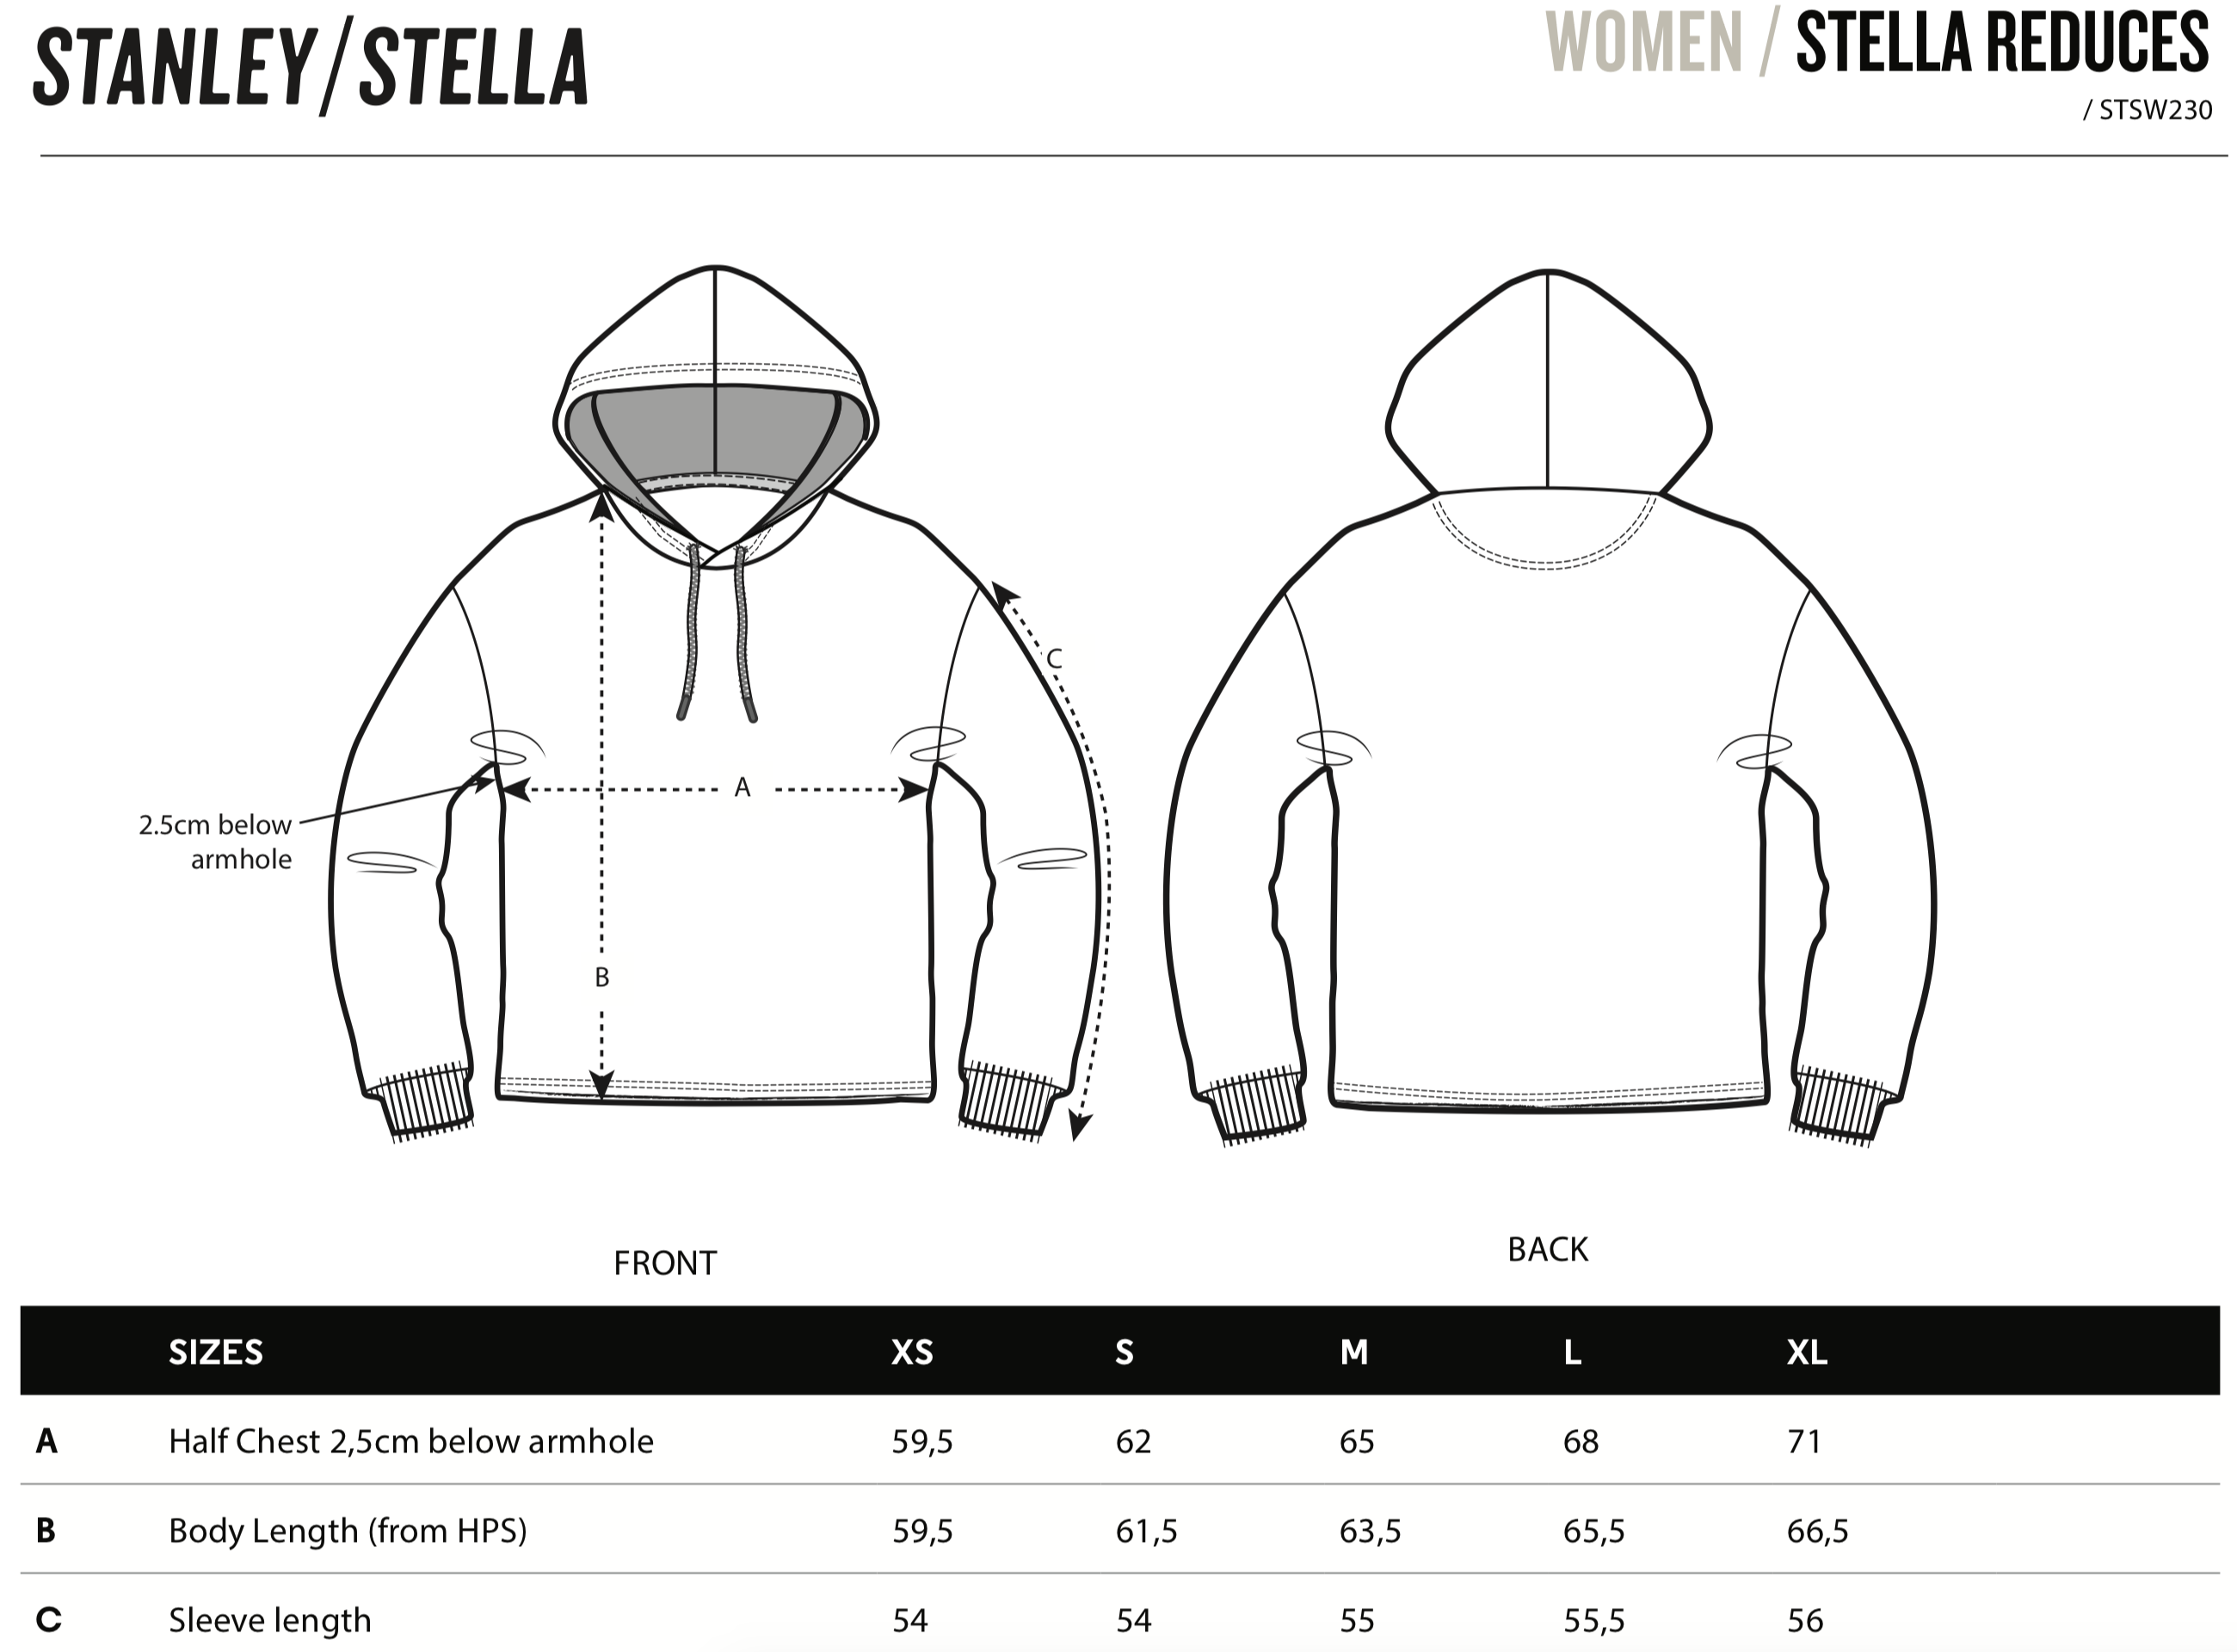 Stella Reduces Size Guide